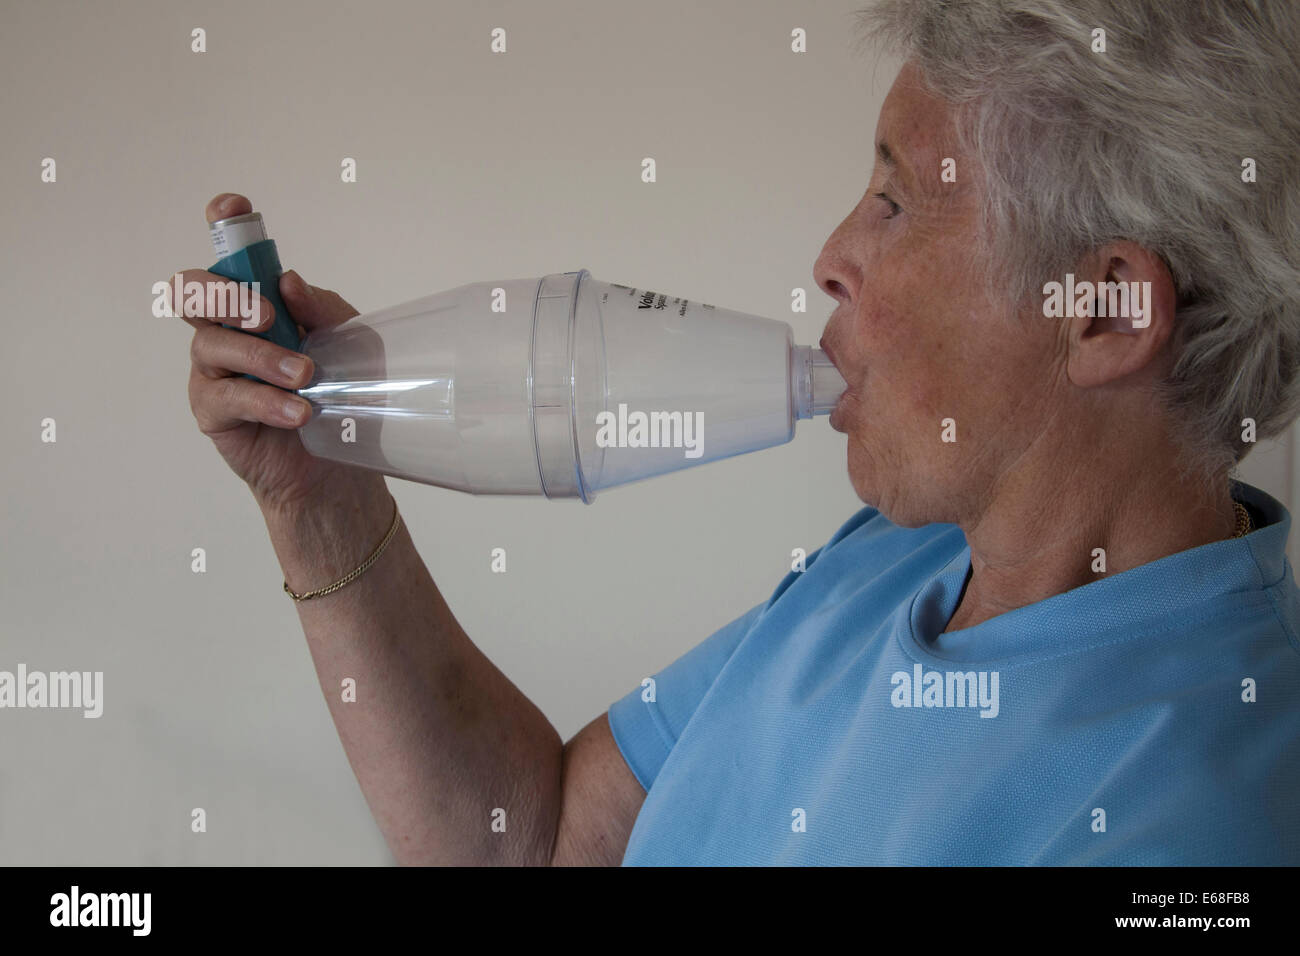 Elderly asthmatic woman using a Volumatic spacer device for Ventolin inhaling - Stock Image